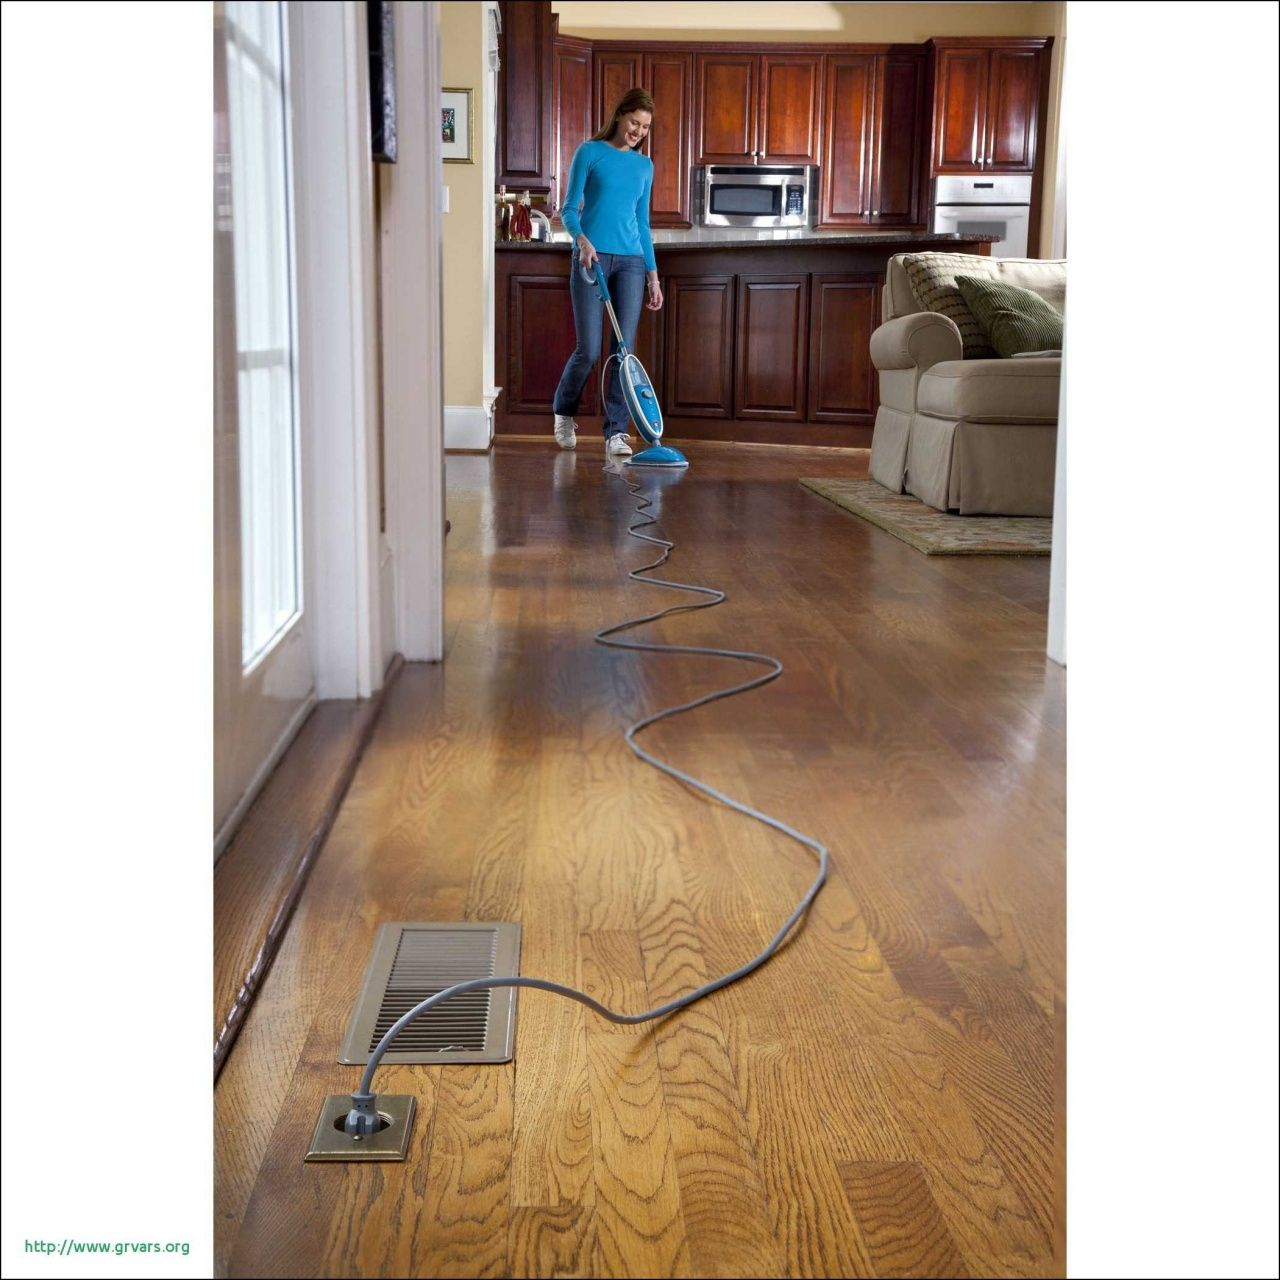 Can You Use A Steam Cleaner On Laminate Flooring in 2020